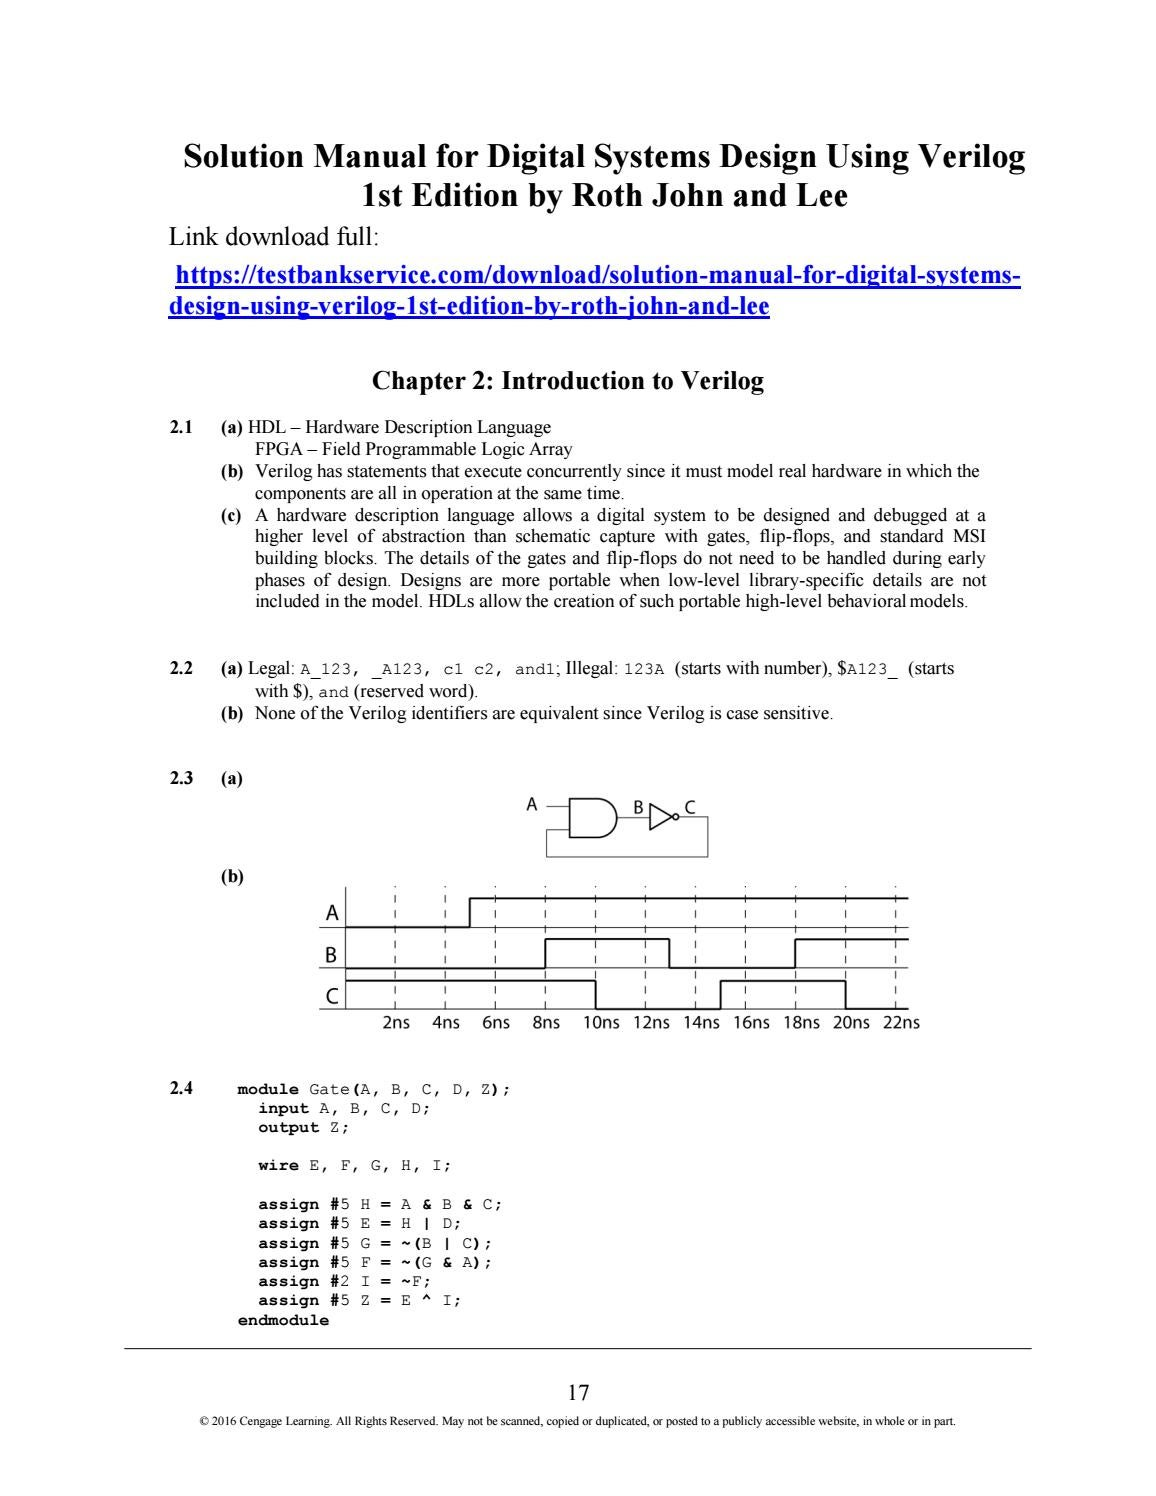 Solution Manual For Digital Systems Design Using Verilog 1st Edition By Roth John And Lee By Blueskymartin Issuu